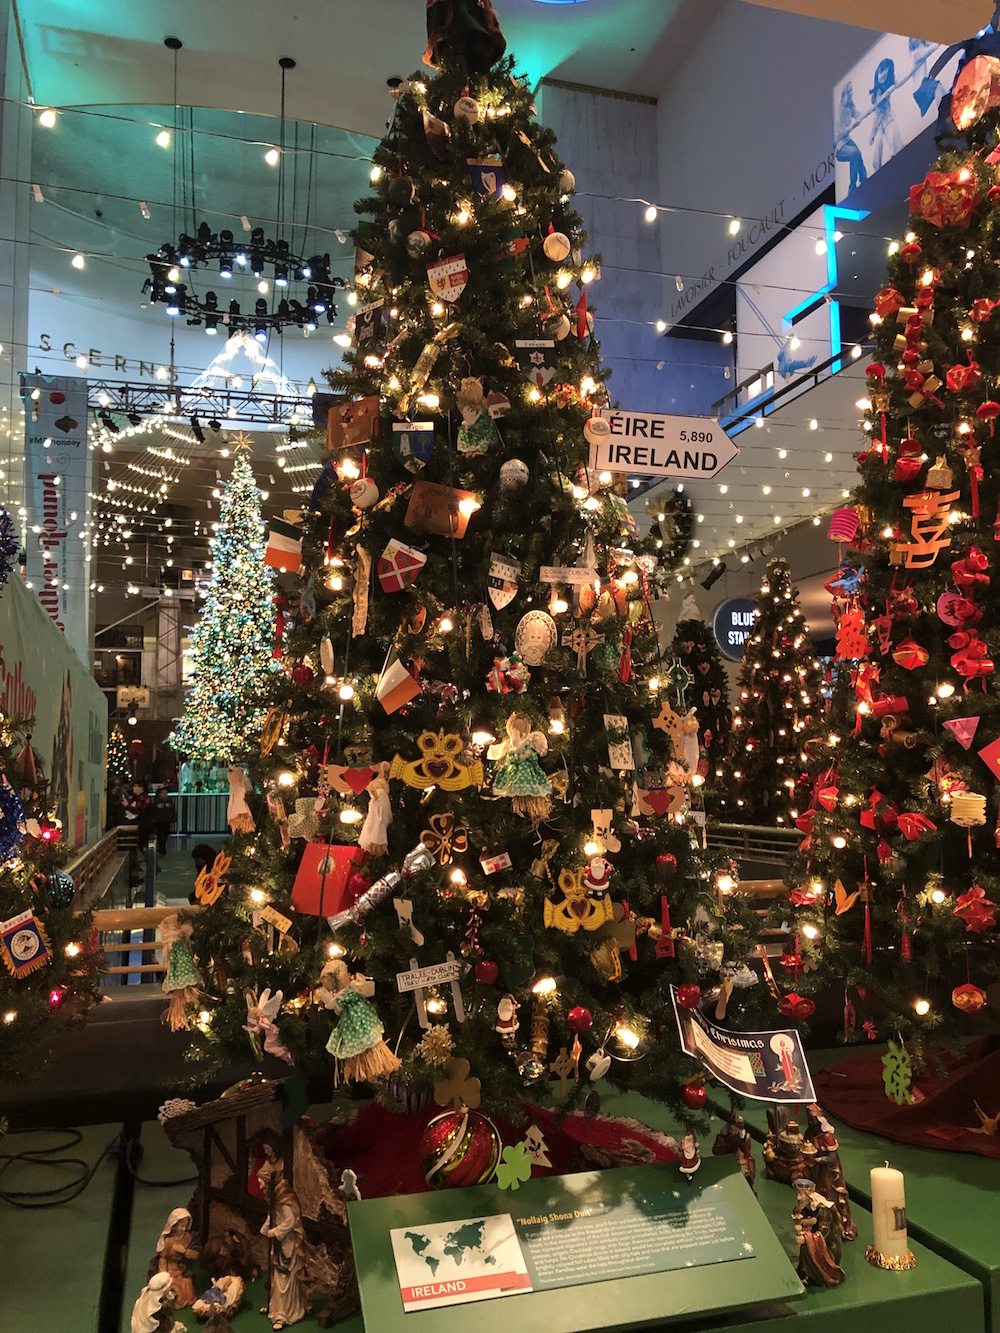 Visiting the Christmas Around the World Exhibit is one of the Best things to do in Chicago during the holidays